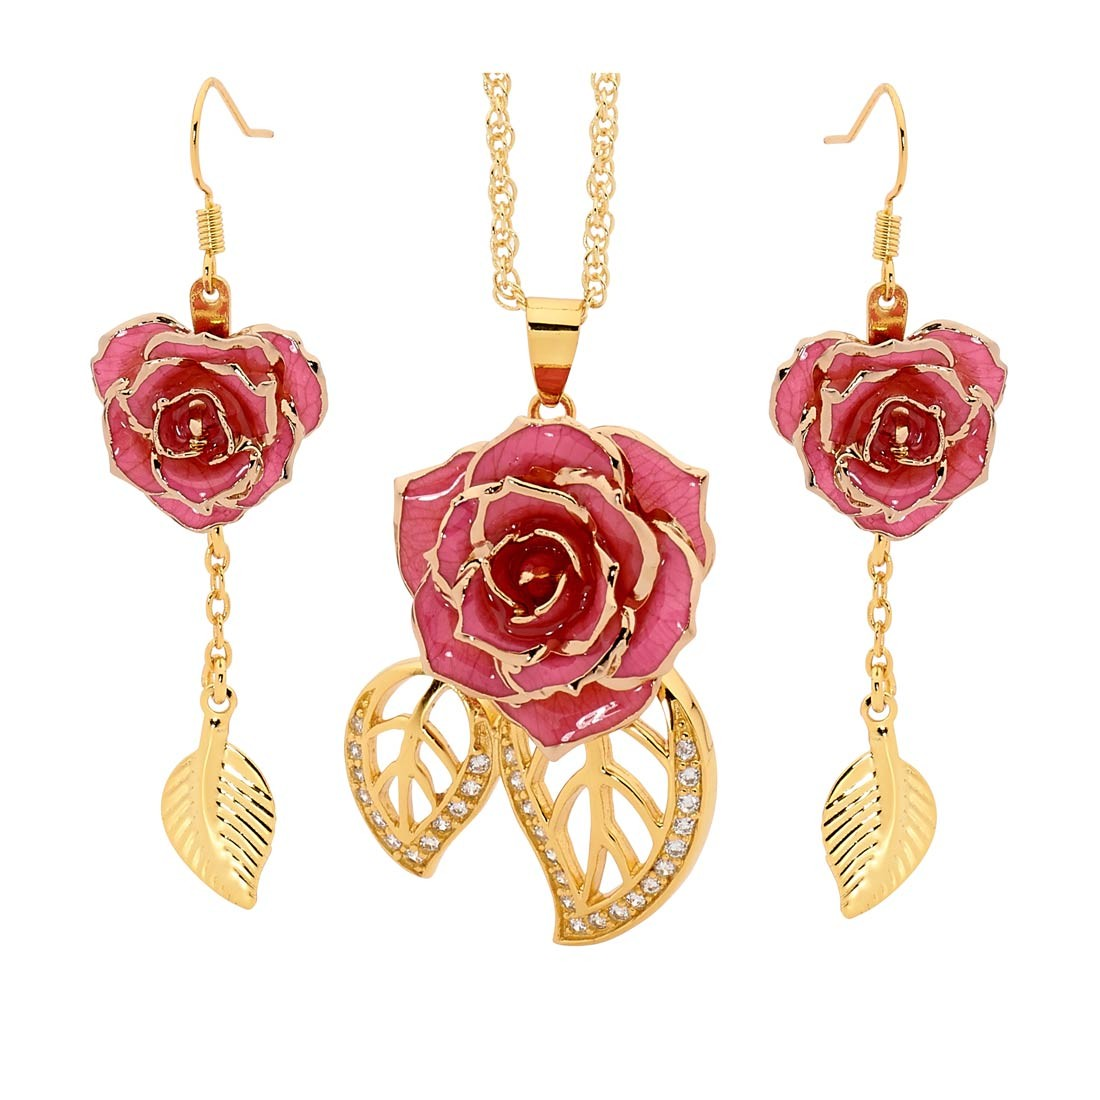 Gold Dipped Rose Amp Pink Matched Jewellery Set In Leaf Theme